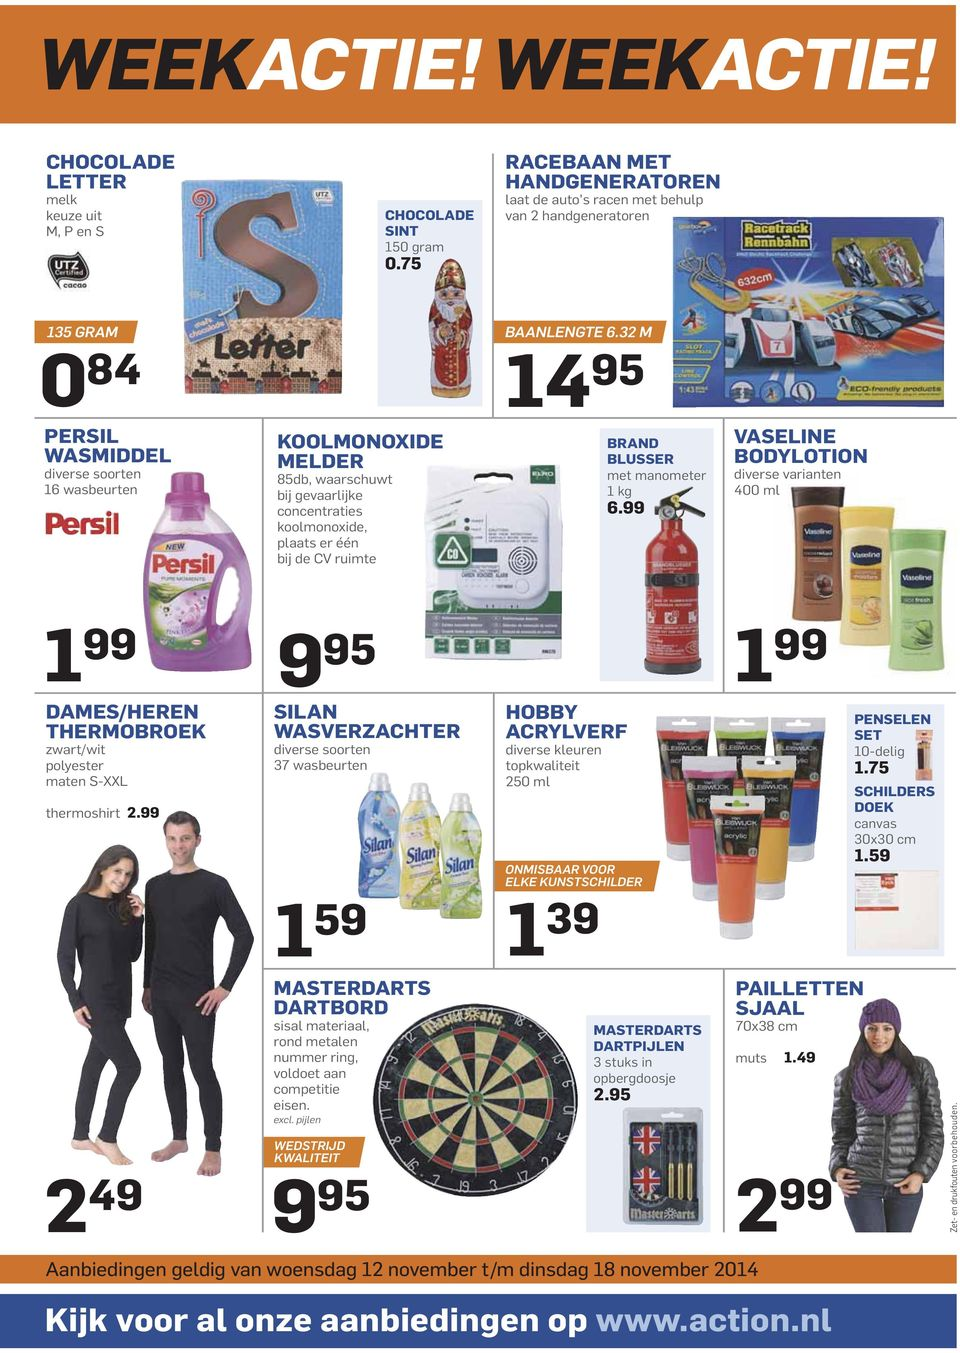 manometer 1 kg 6.99 VASELINE BODYLOTION diverse varianten 400 ml DAMES/HEREN THERMOBROEK zwart/wit polyester maten S-XXL thermoshirt 2.